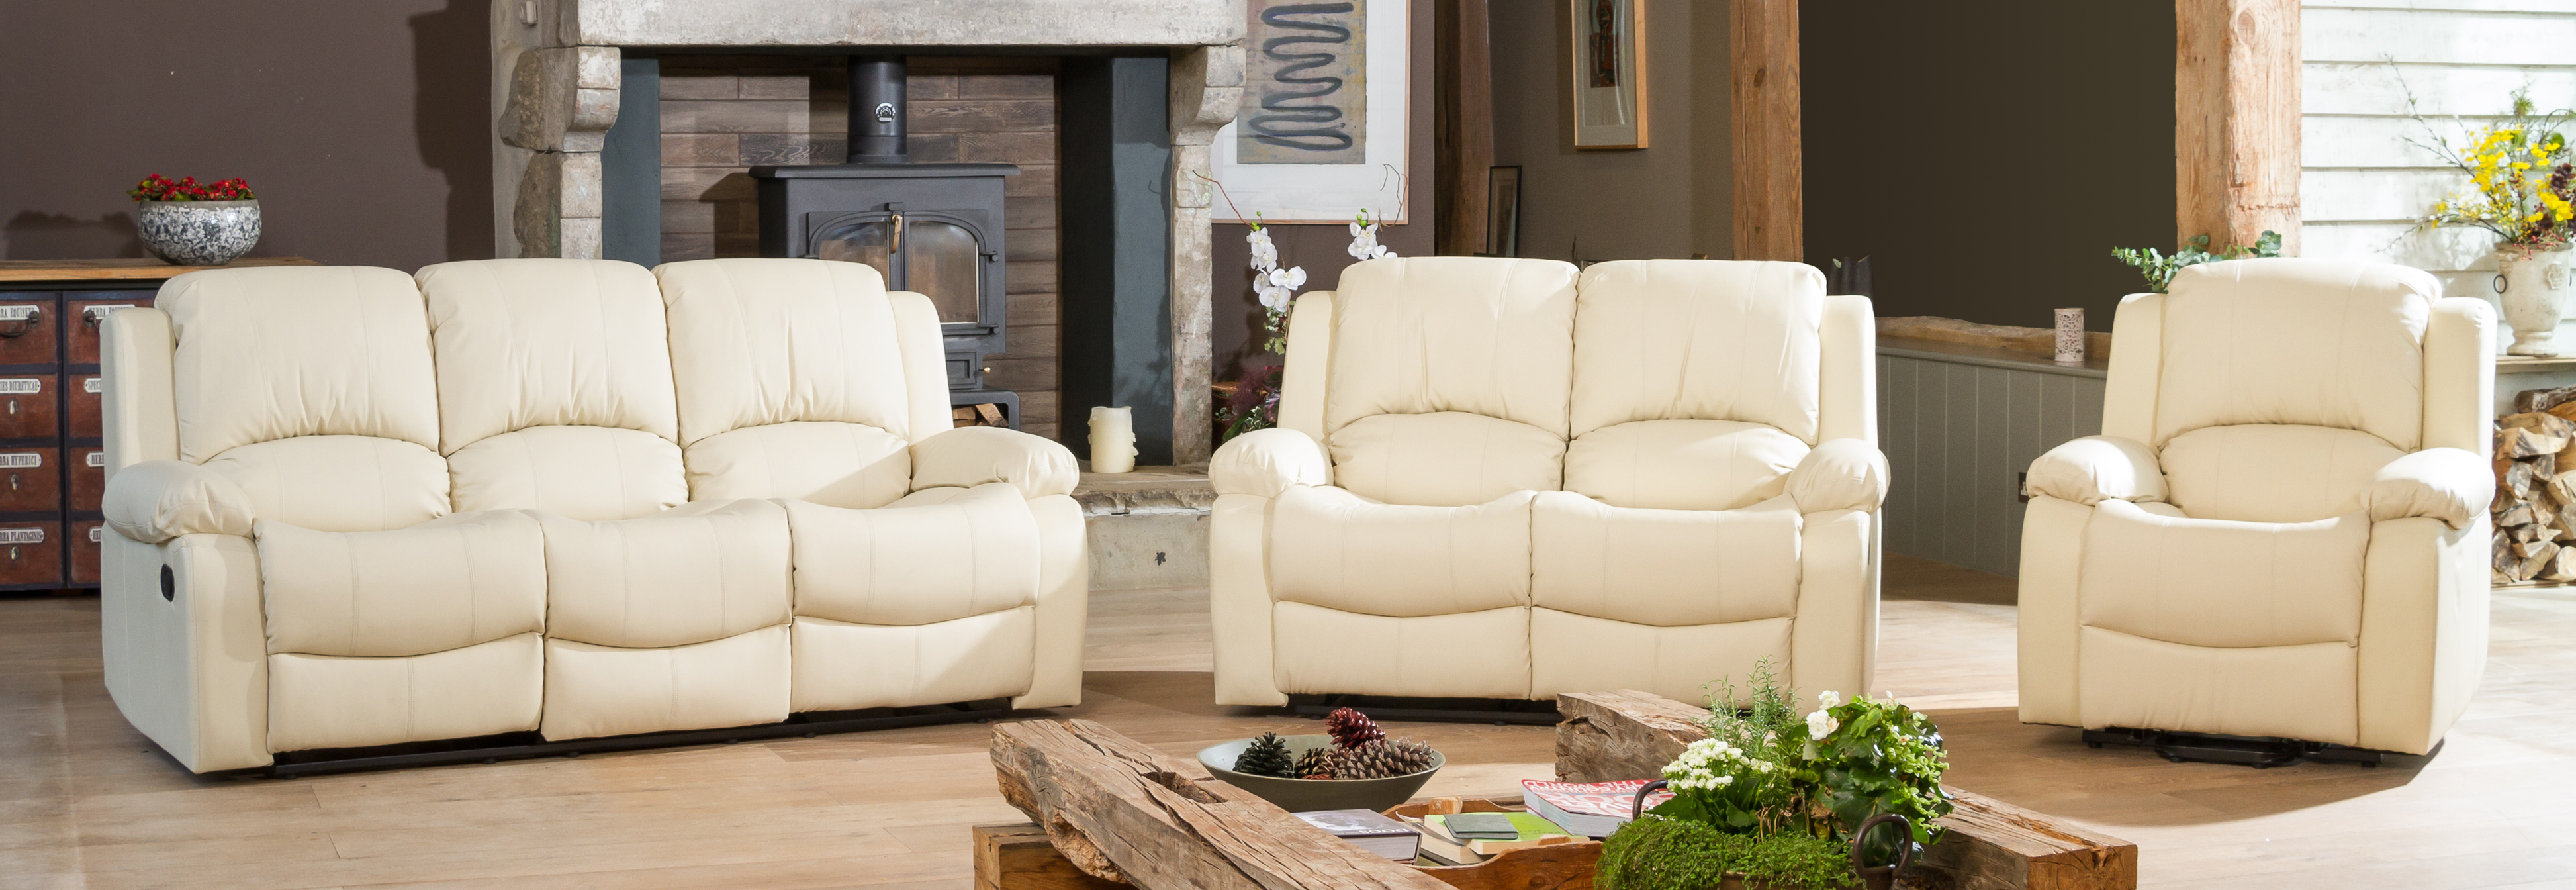 Burghley Reclining Suite cream